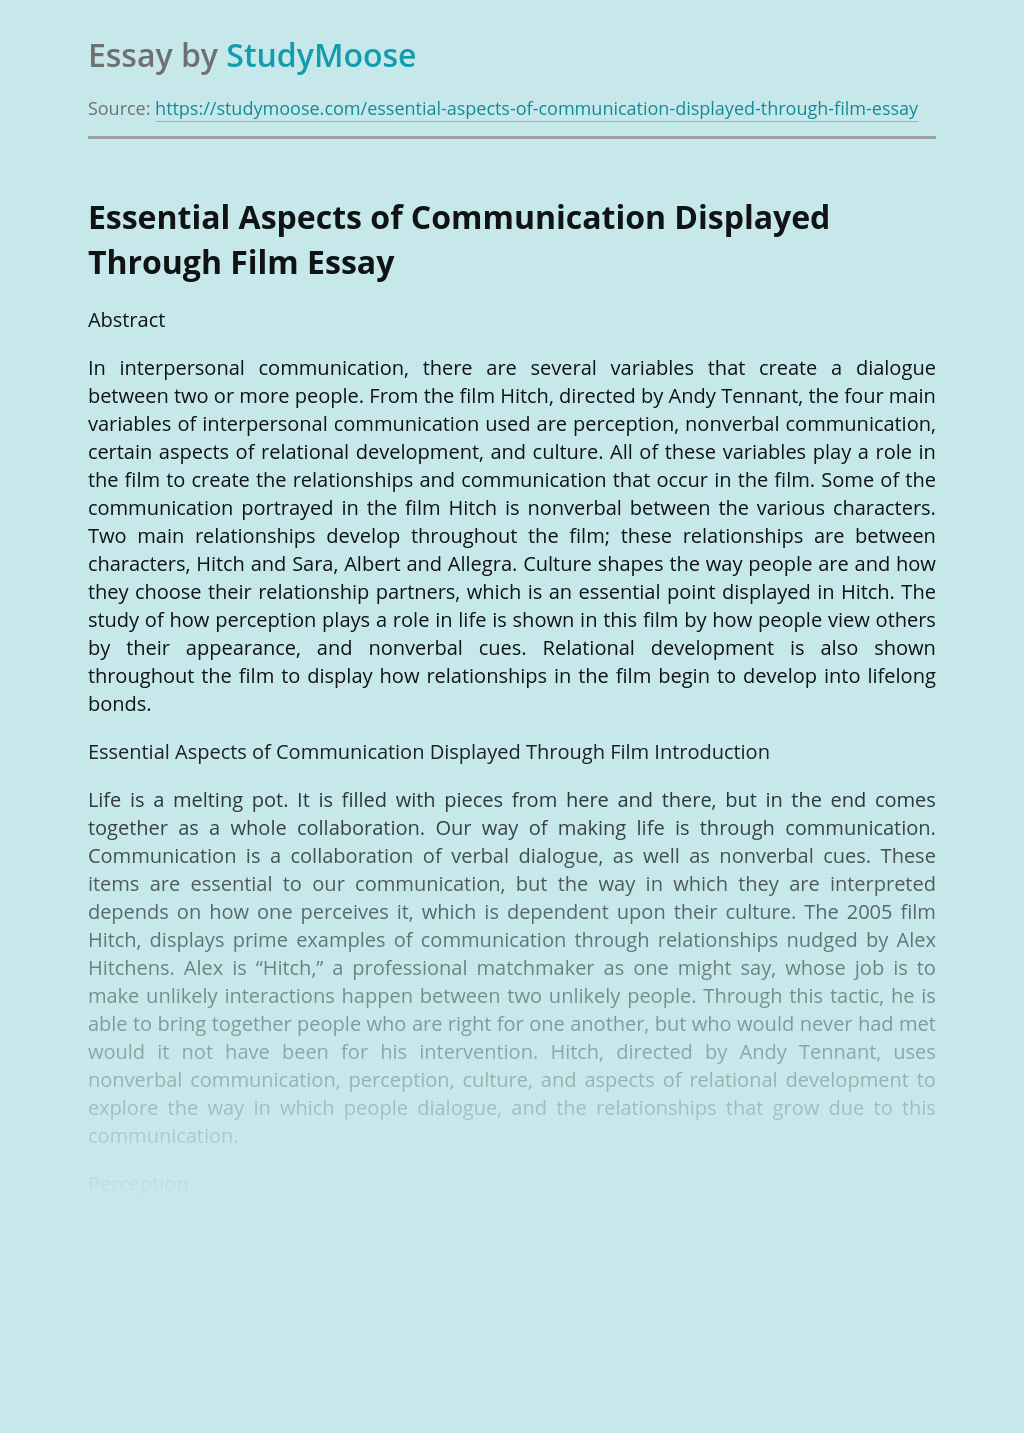 Essential Aspects of Communication Displayed Through Film